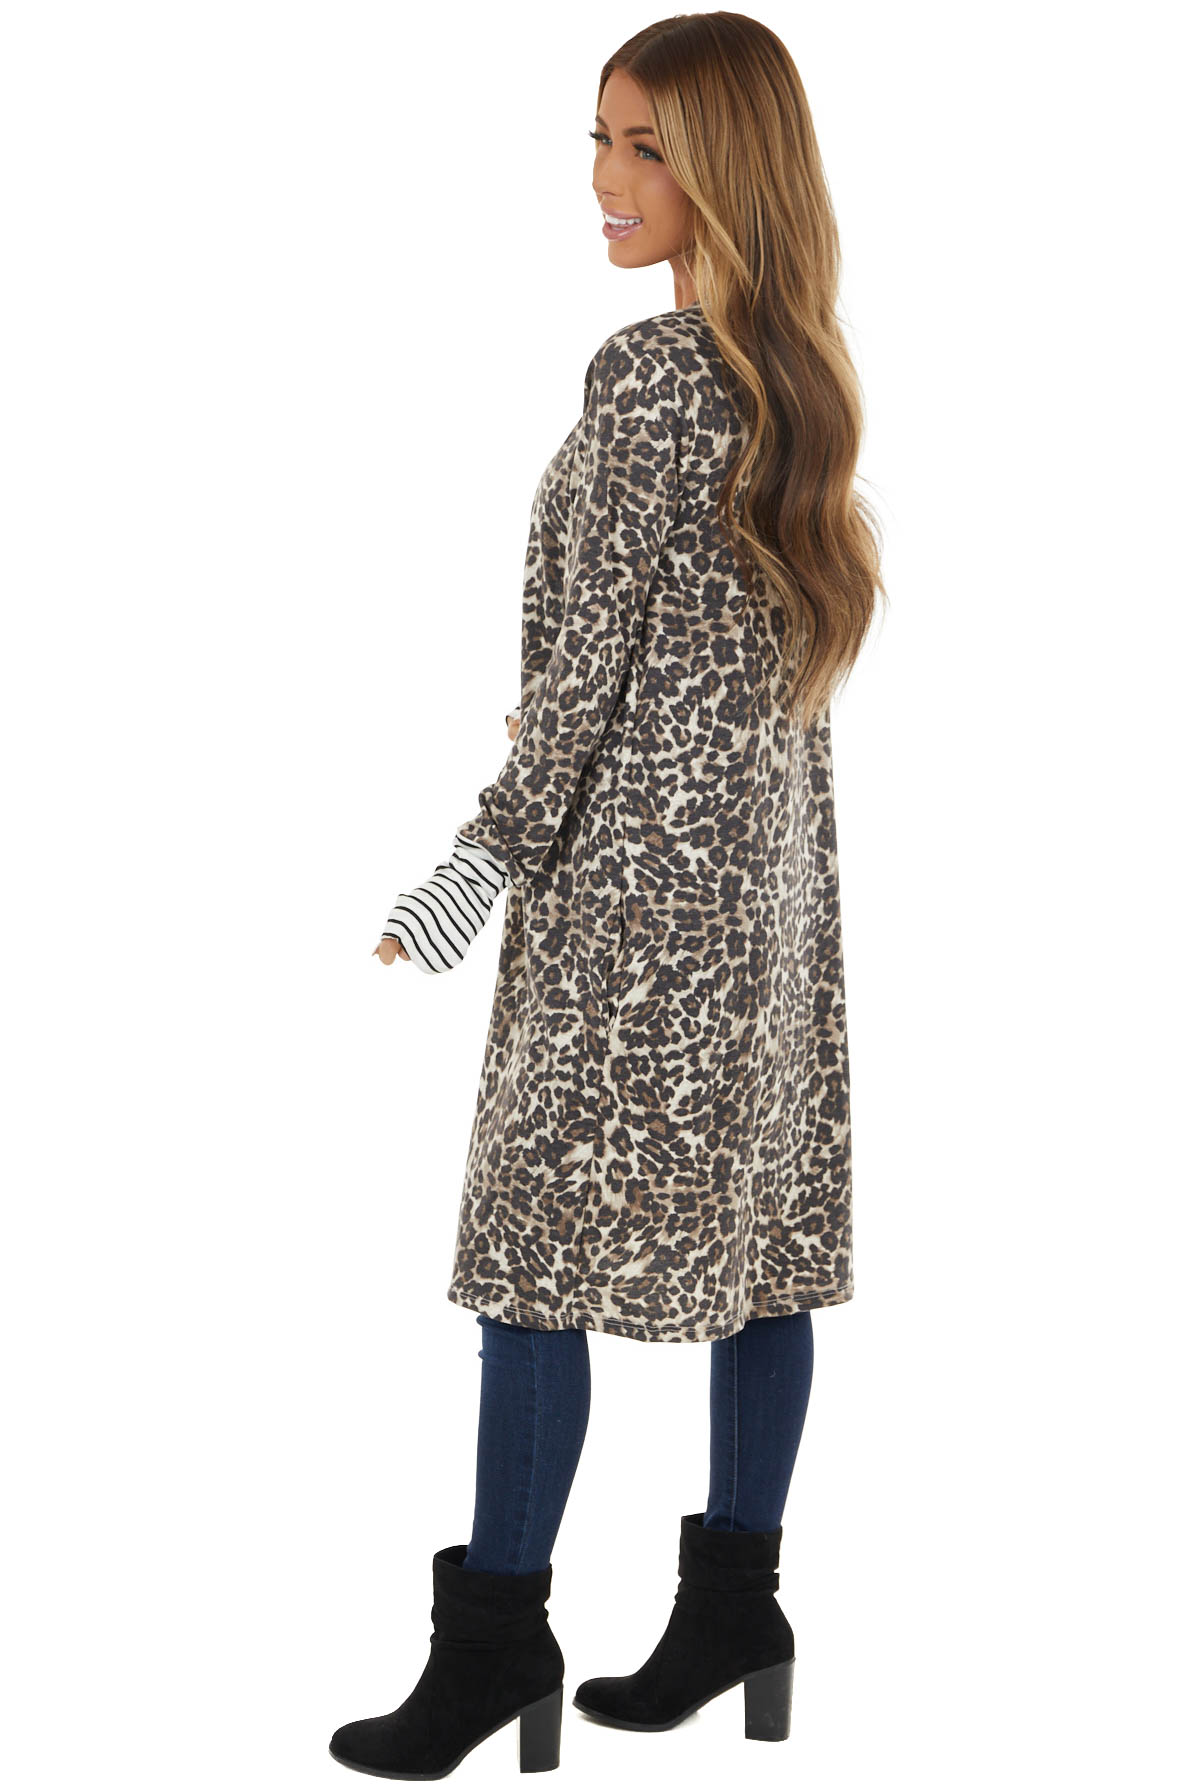 Oatmeal Leopard Print Cardigan with Striped Contrasts